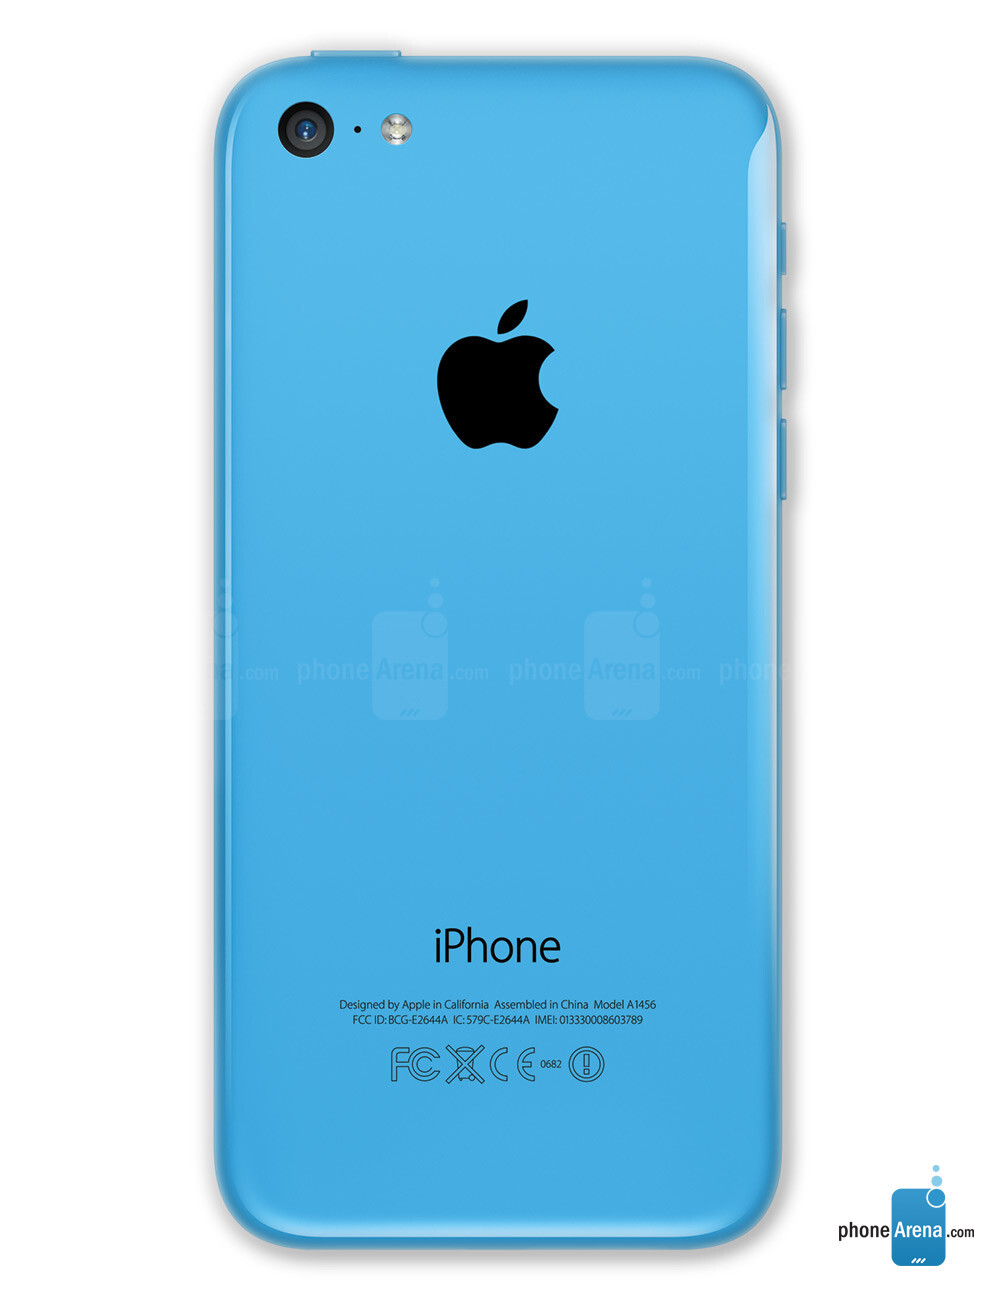 apple iphone 5c specs. Black Bedroom Furniture Sets. Home Design Ideas